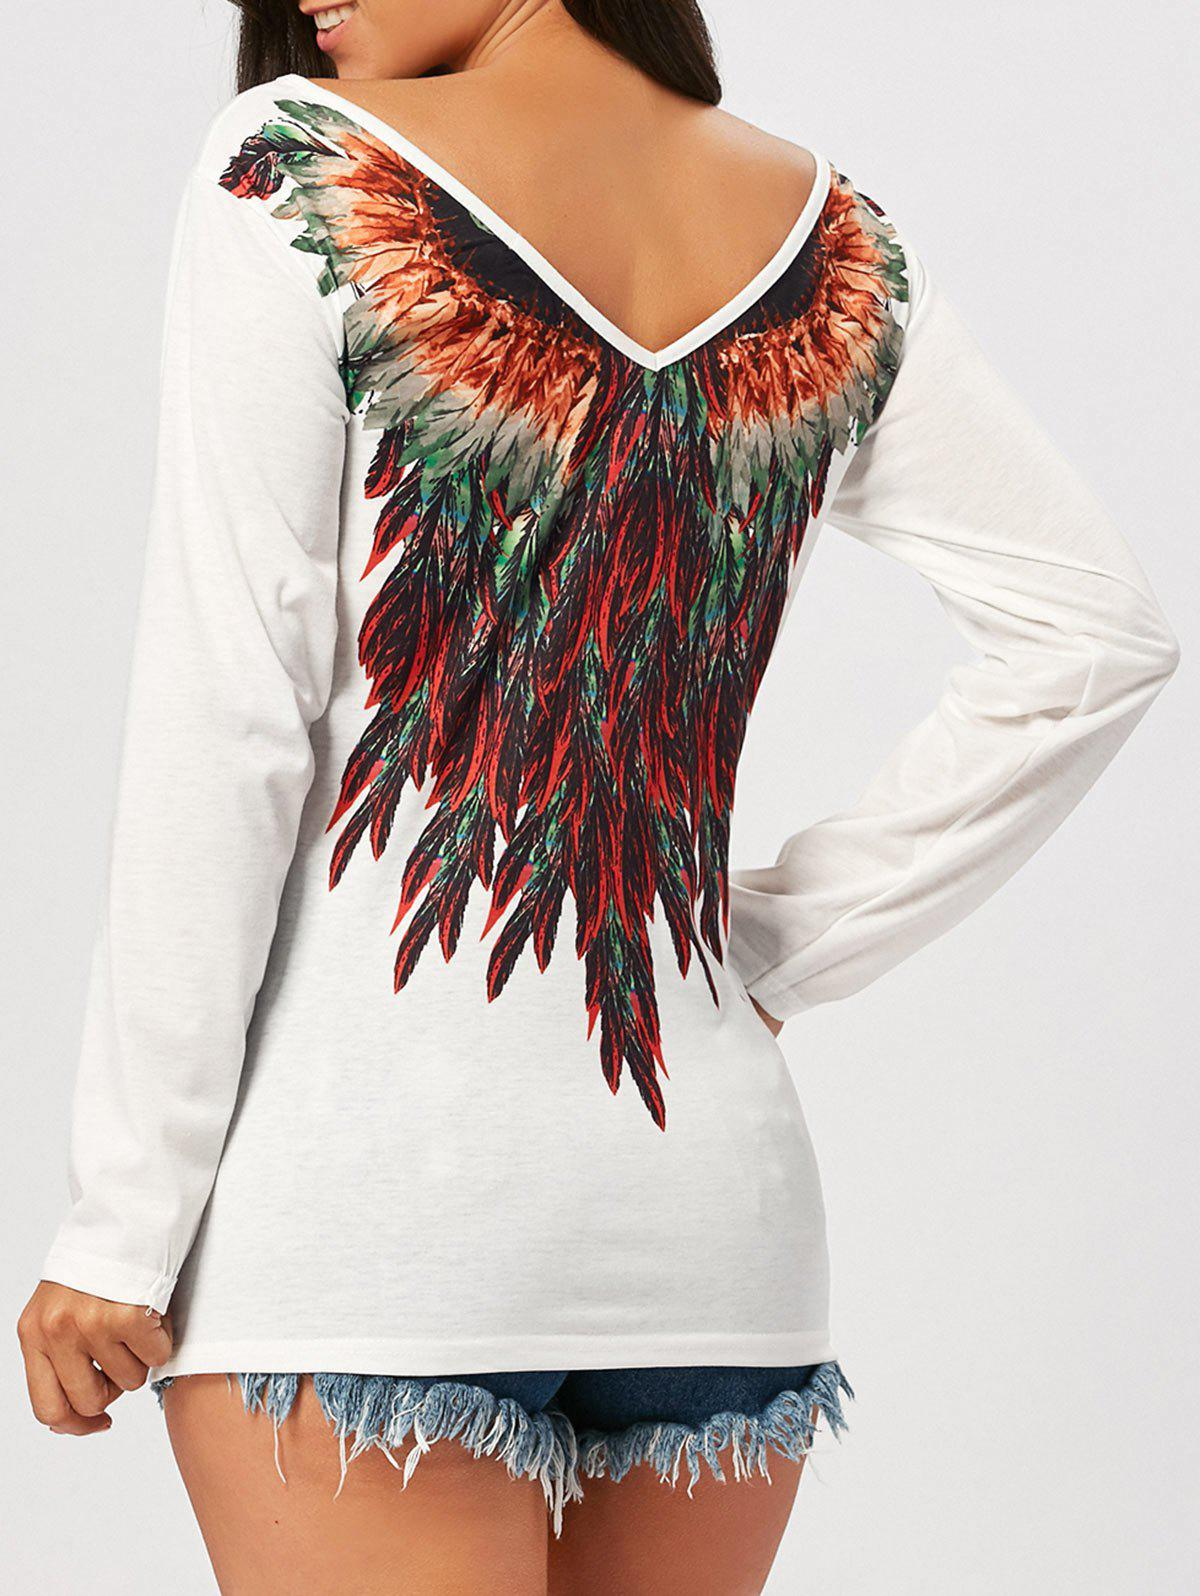 Tribal Feathers Print Long Sleeve T-shirtWOMEN<br><br>Size: S; Color: WHITE; Material: Polyester,Spandex; Shirt Length: Regular; Sleeve Length: Full; Collar: Round Neck; Style: Fashion; Pattern Type: Feather,Print; Season: Fall,Spring; Elasticity: Micro-elastic; Weight: 0.2700kg; Package Contents: 1 x T-shirt;